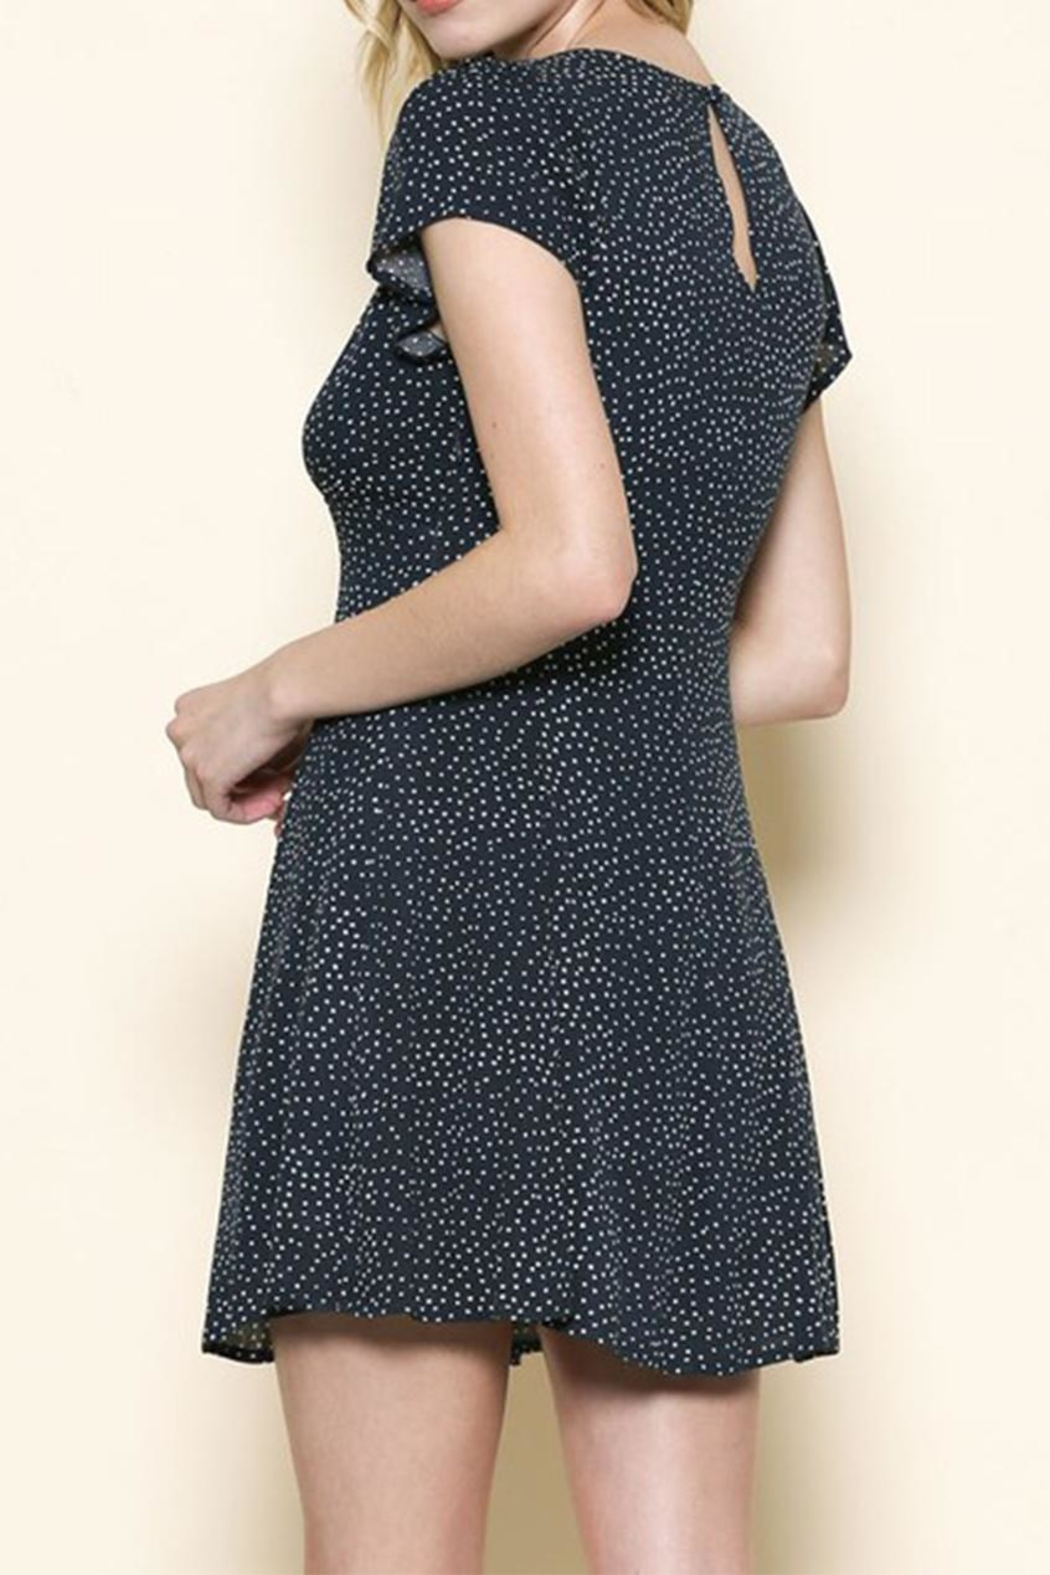 Sole Mio Polka Dot Dress - Front Full Image